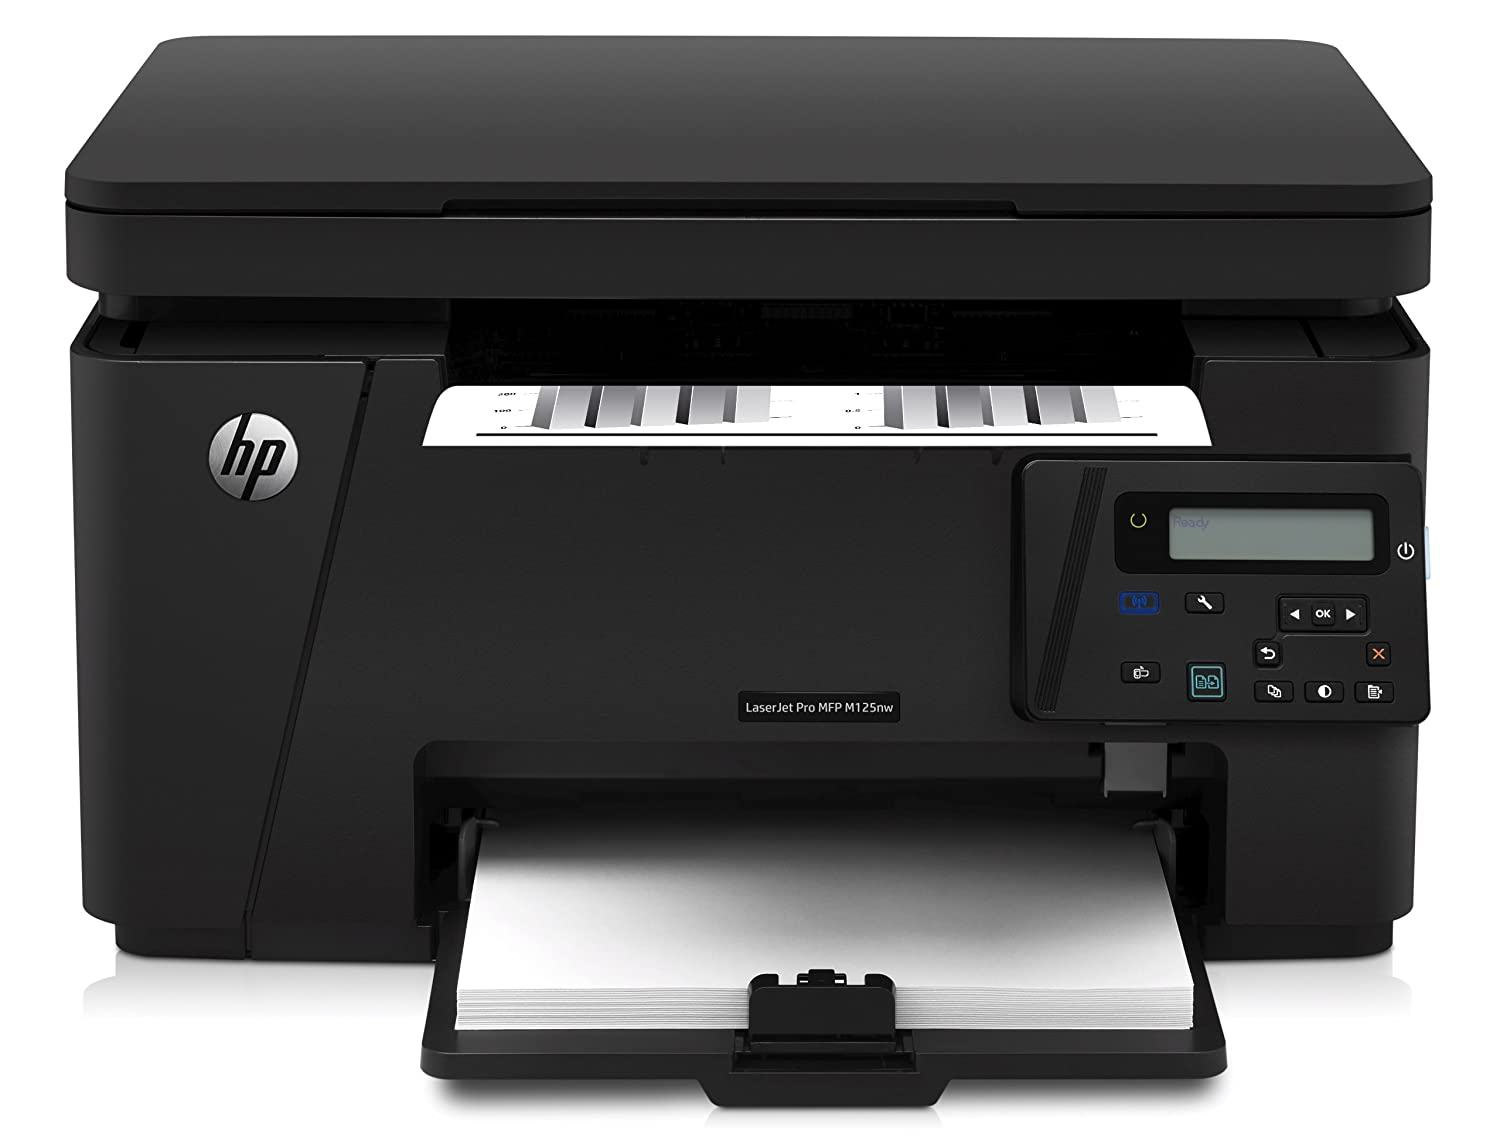 HP LaserJet Pro M125nw Multi-function Black and White Printer:  Amazon.co.uk: Computers & Accessories